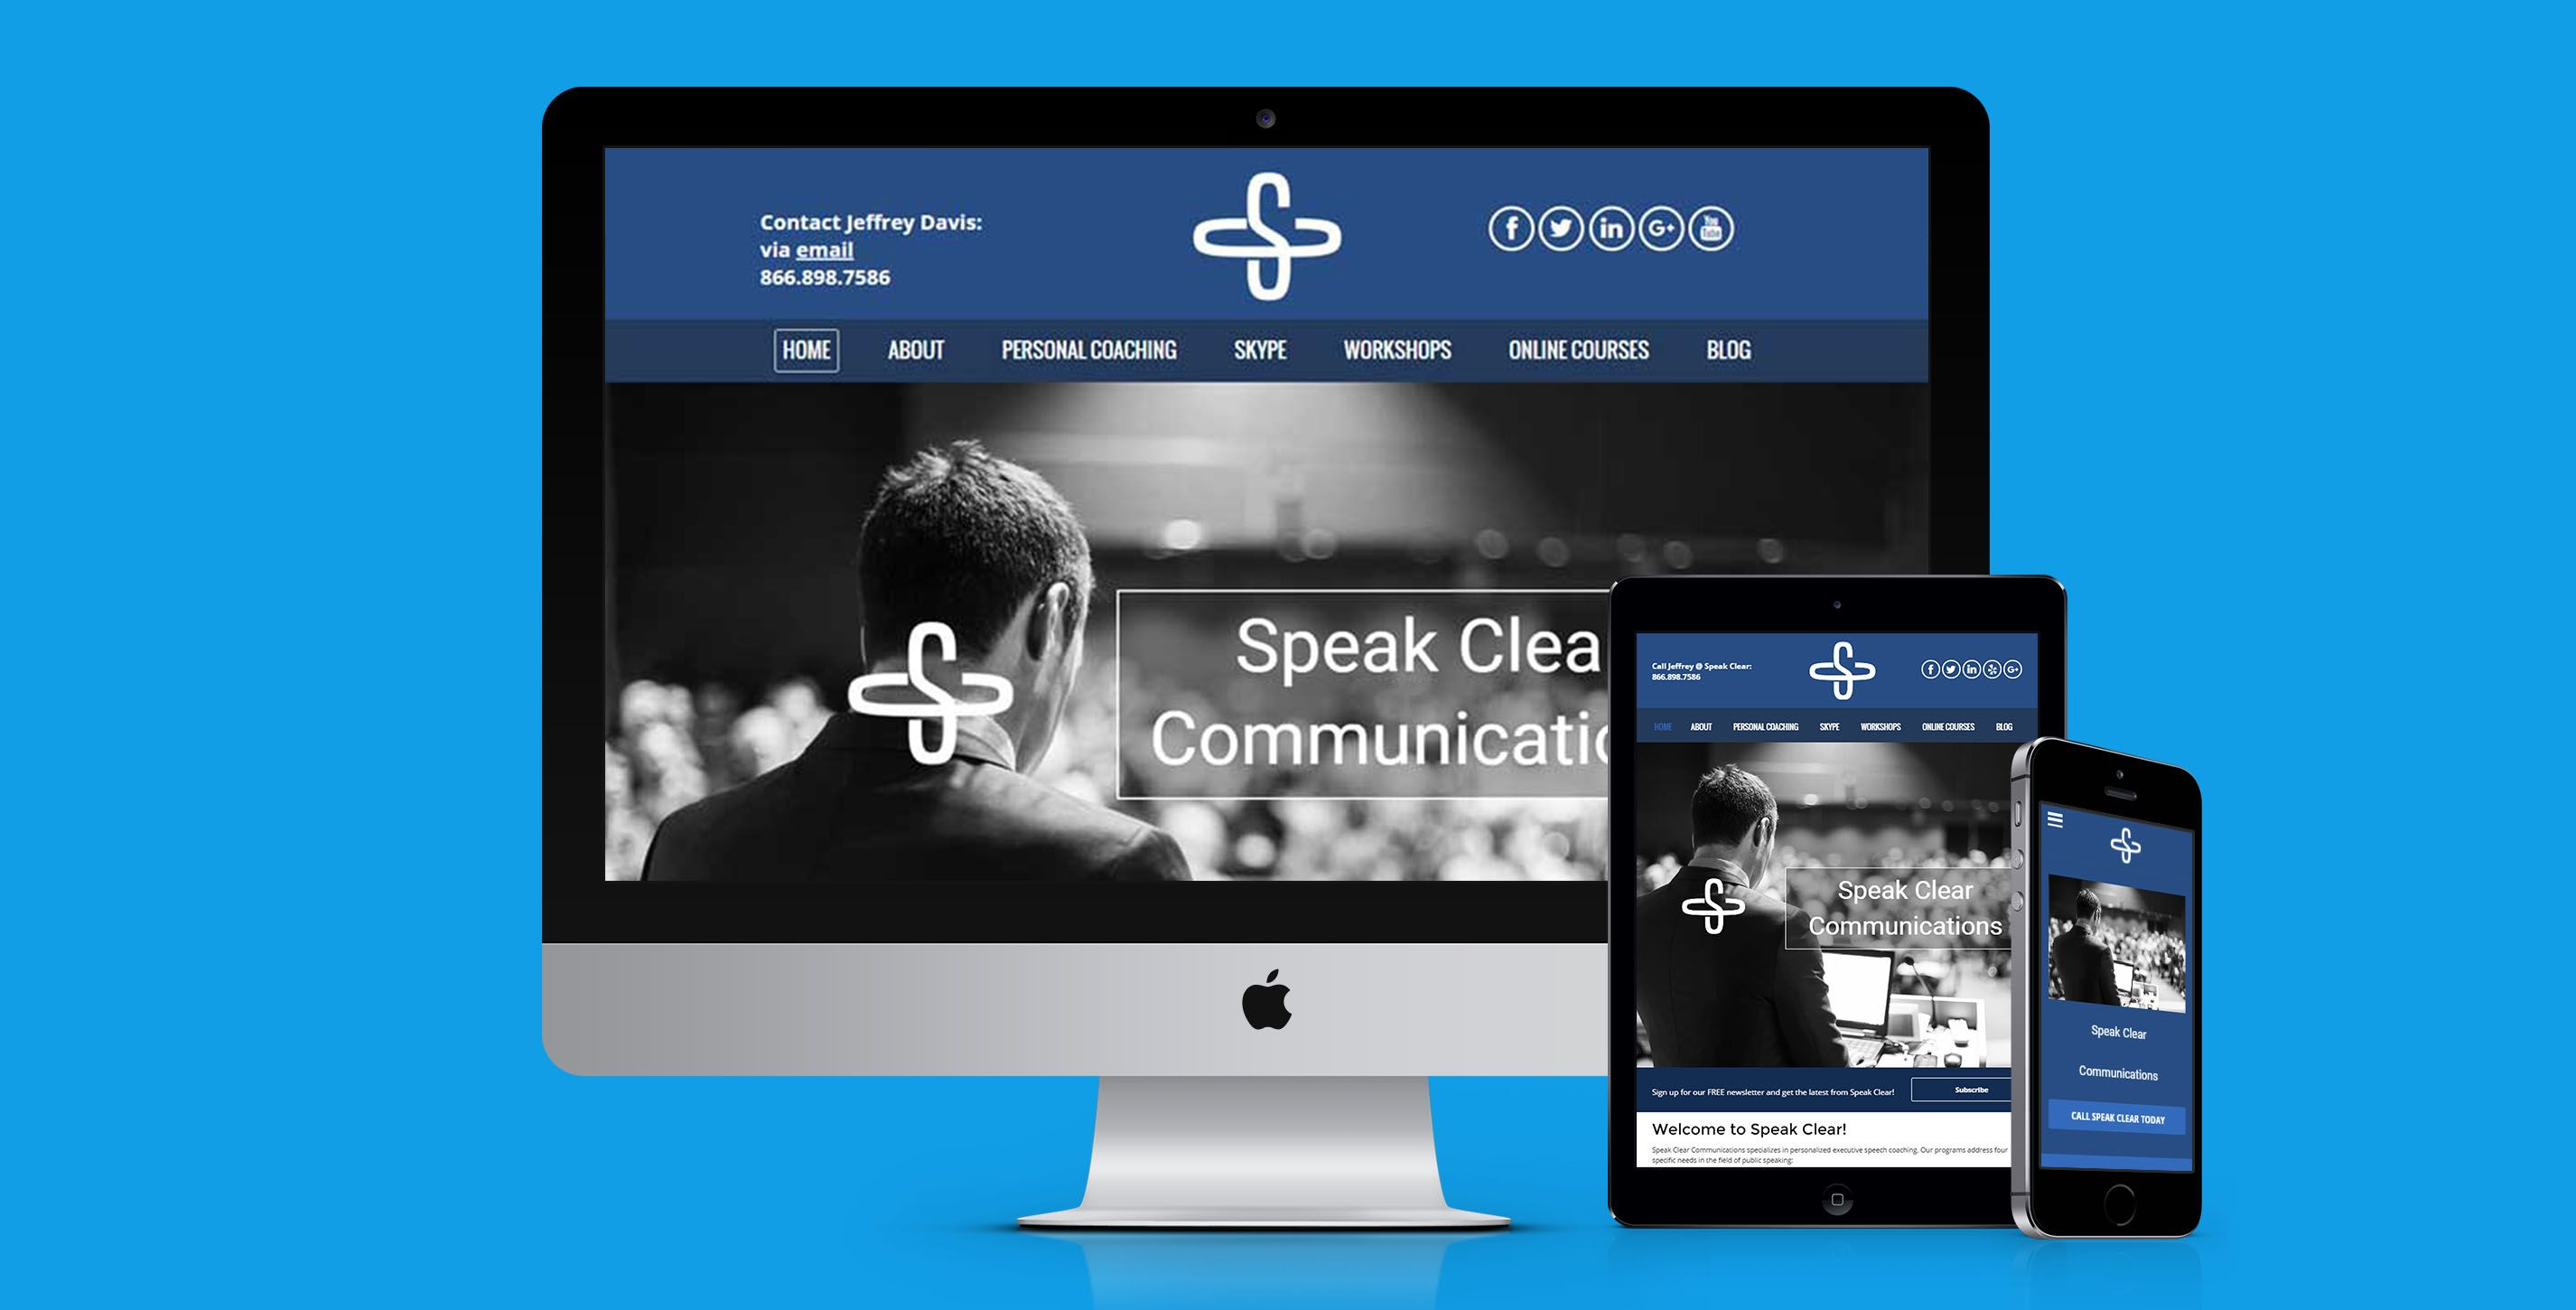 Responsive Web Design By Webact For Speak Clear Communications In New York New York Responsive Website Design Web Design Web Design Projects